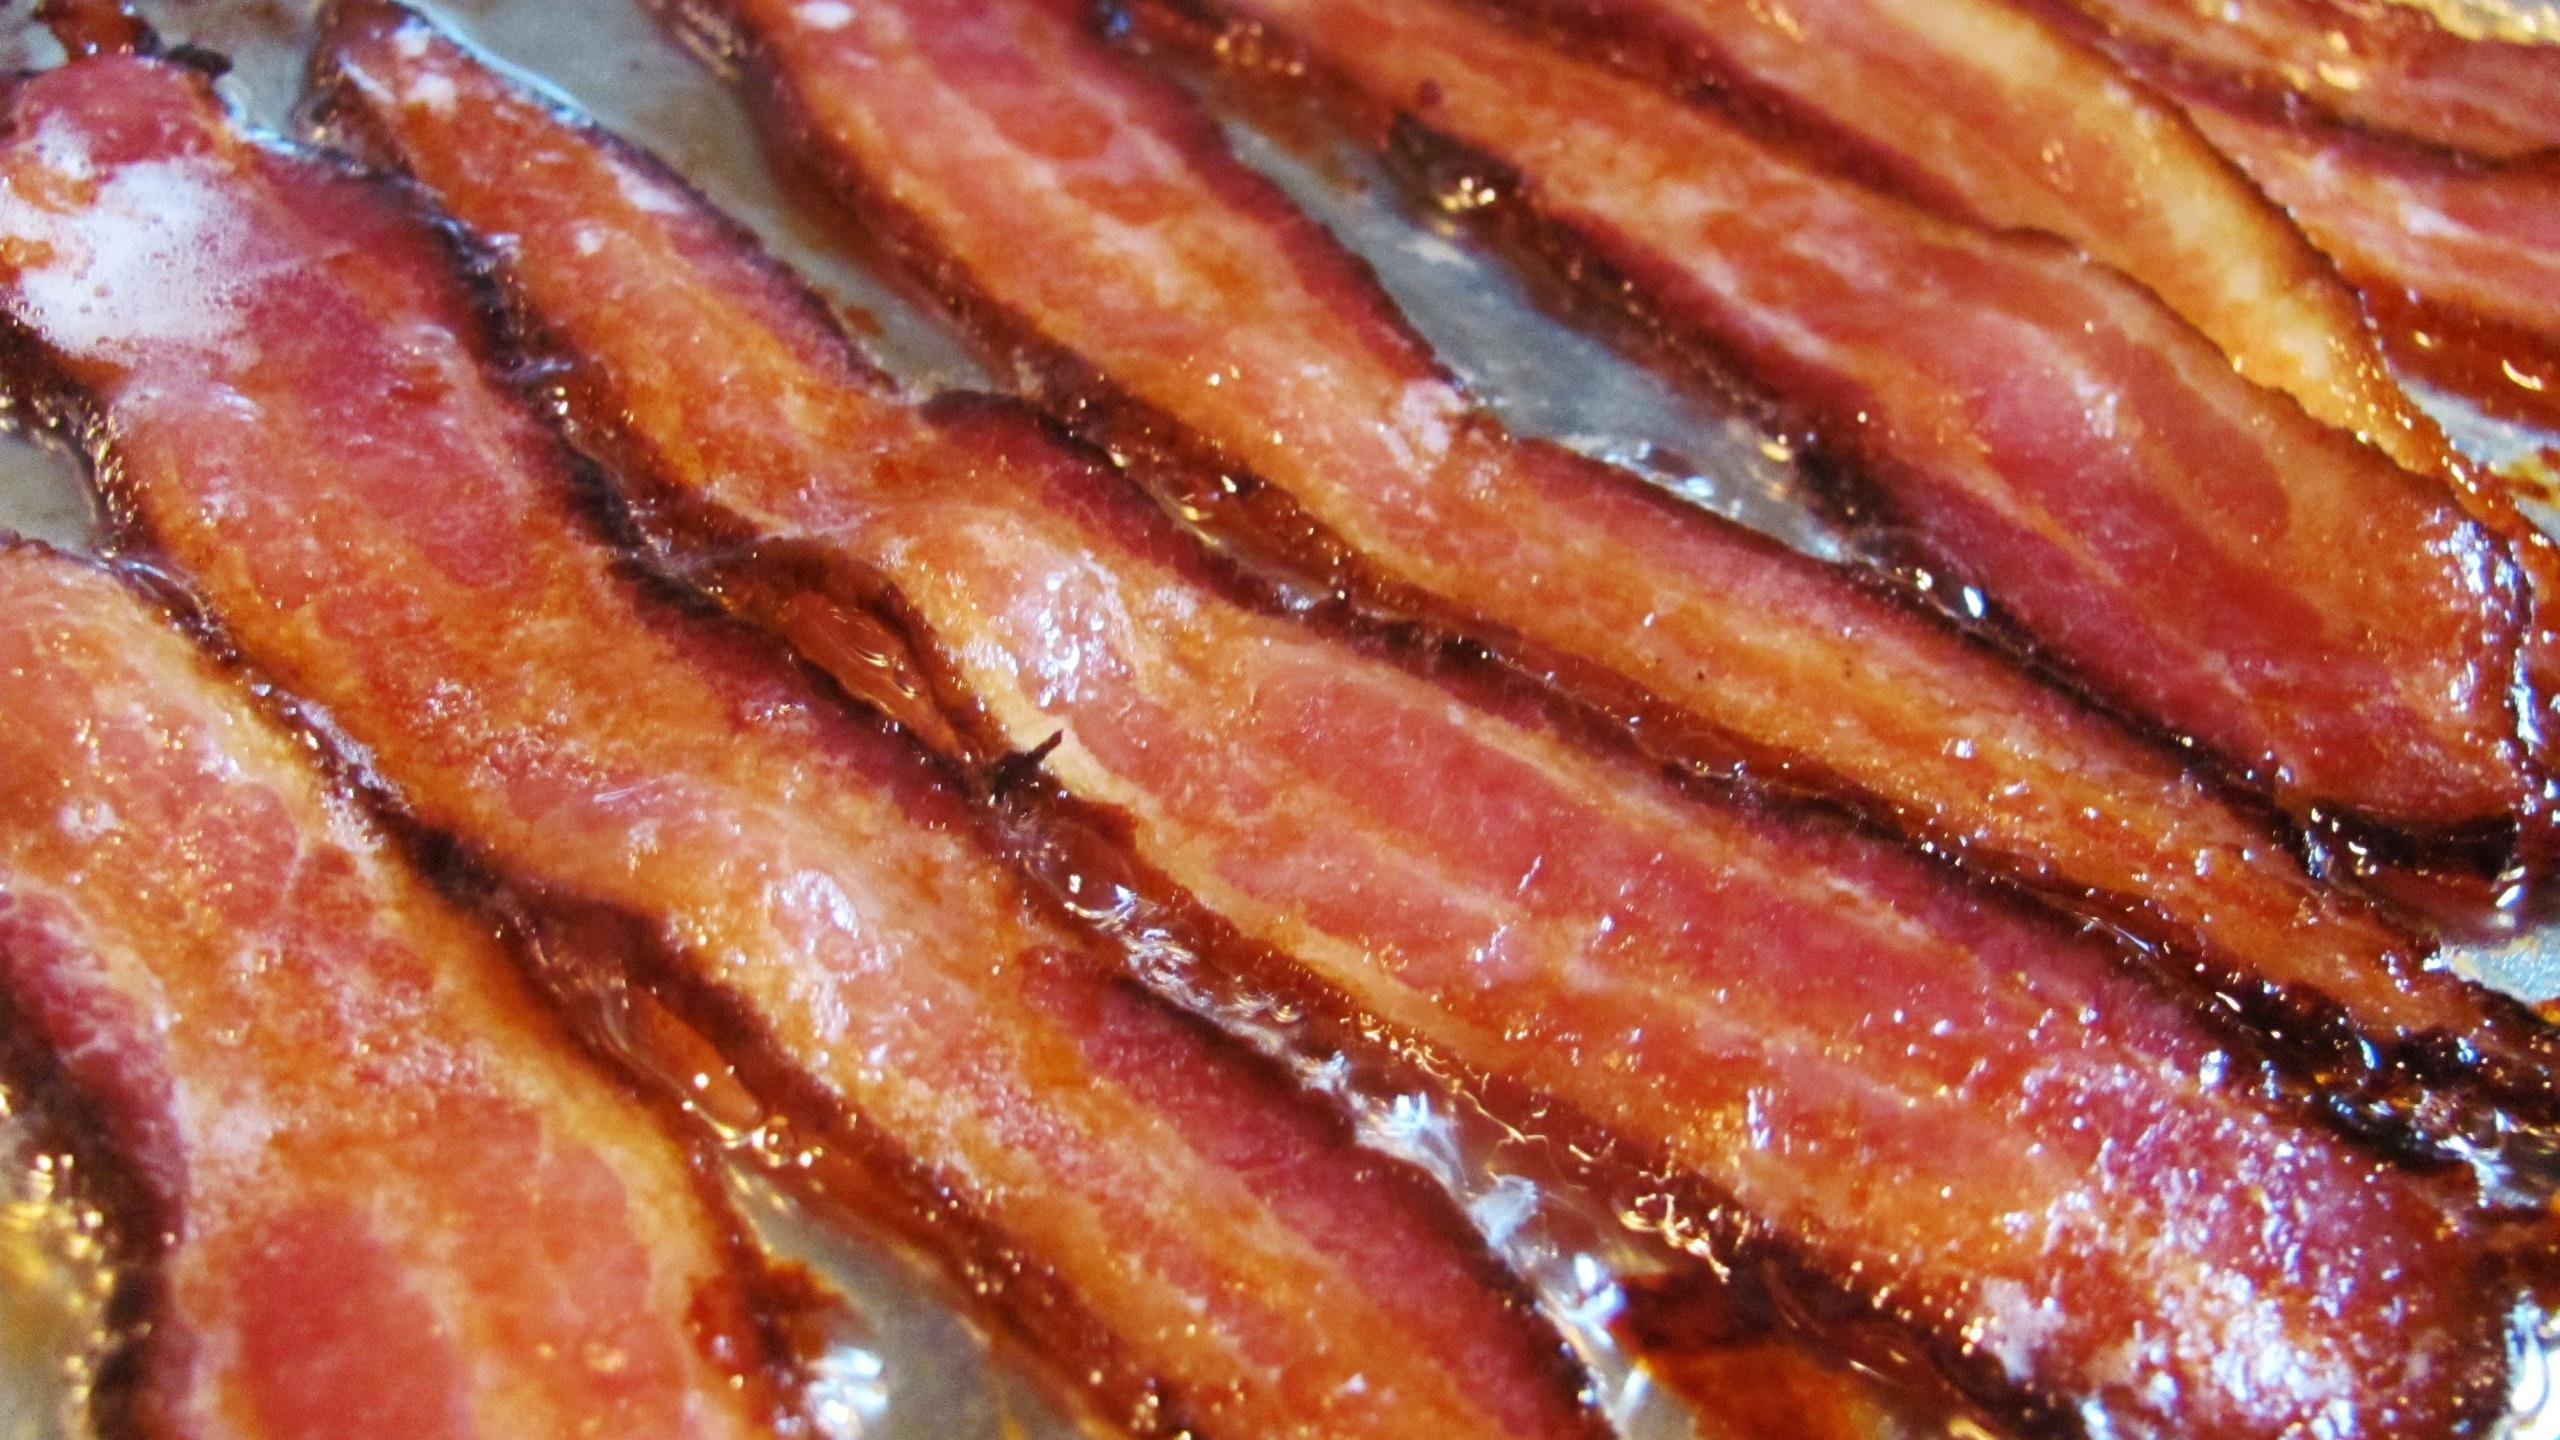 Awesome Bacon free wallpaper ID:81328 for hd 2560x1440 desktop